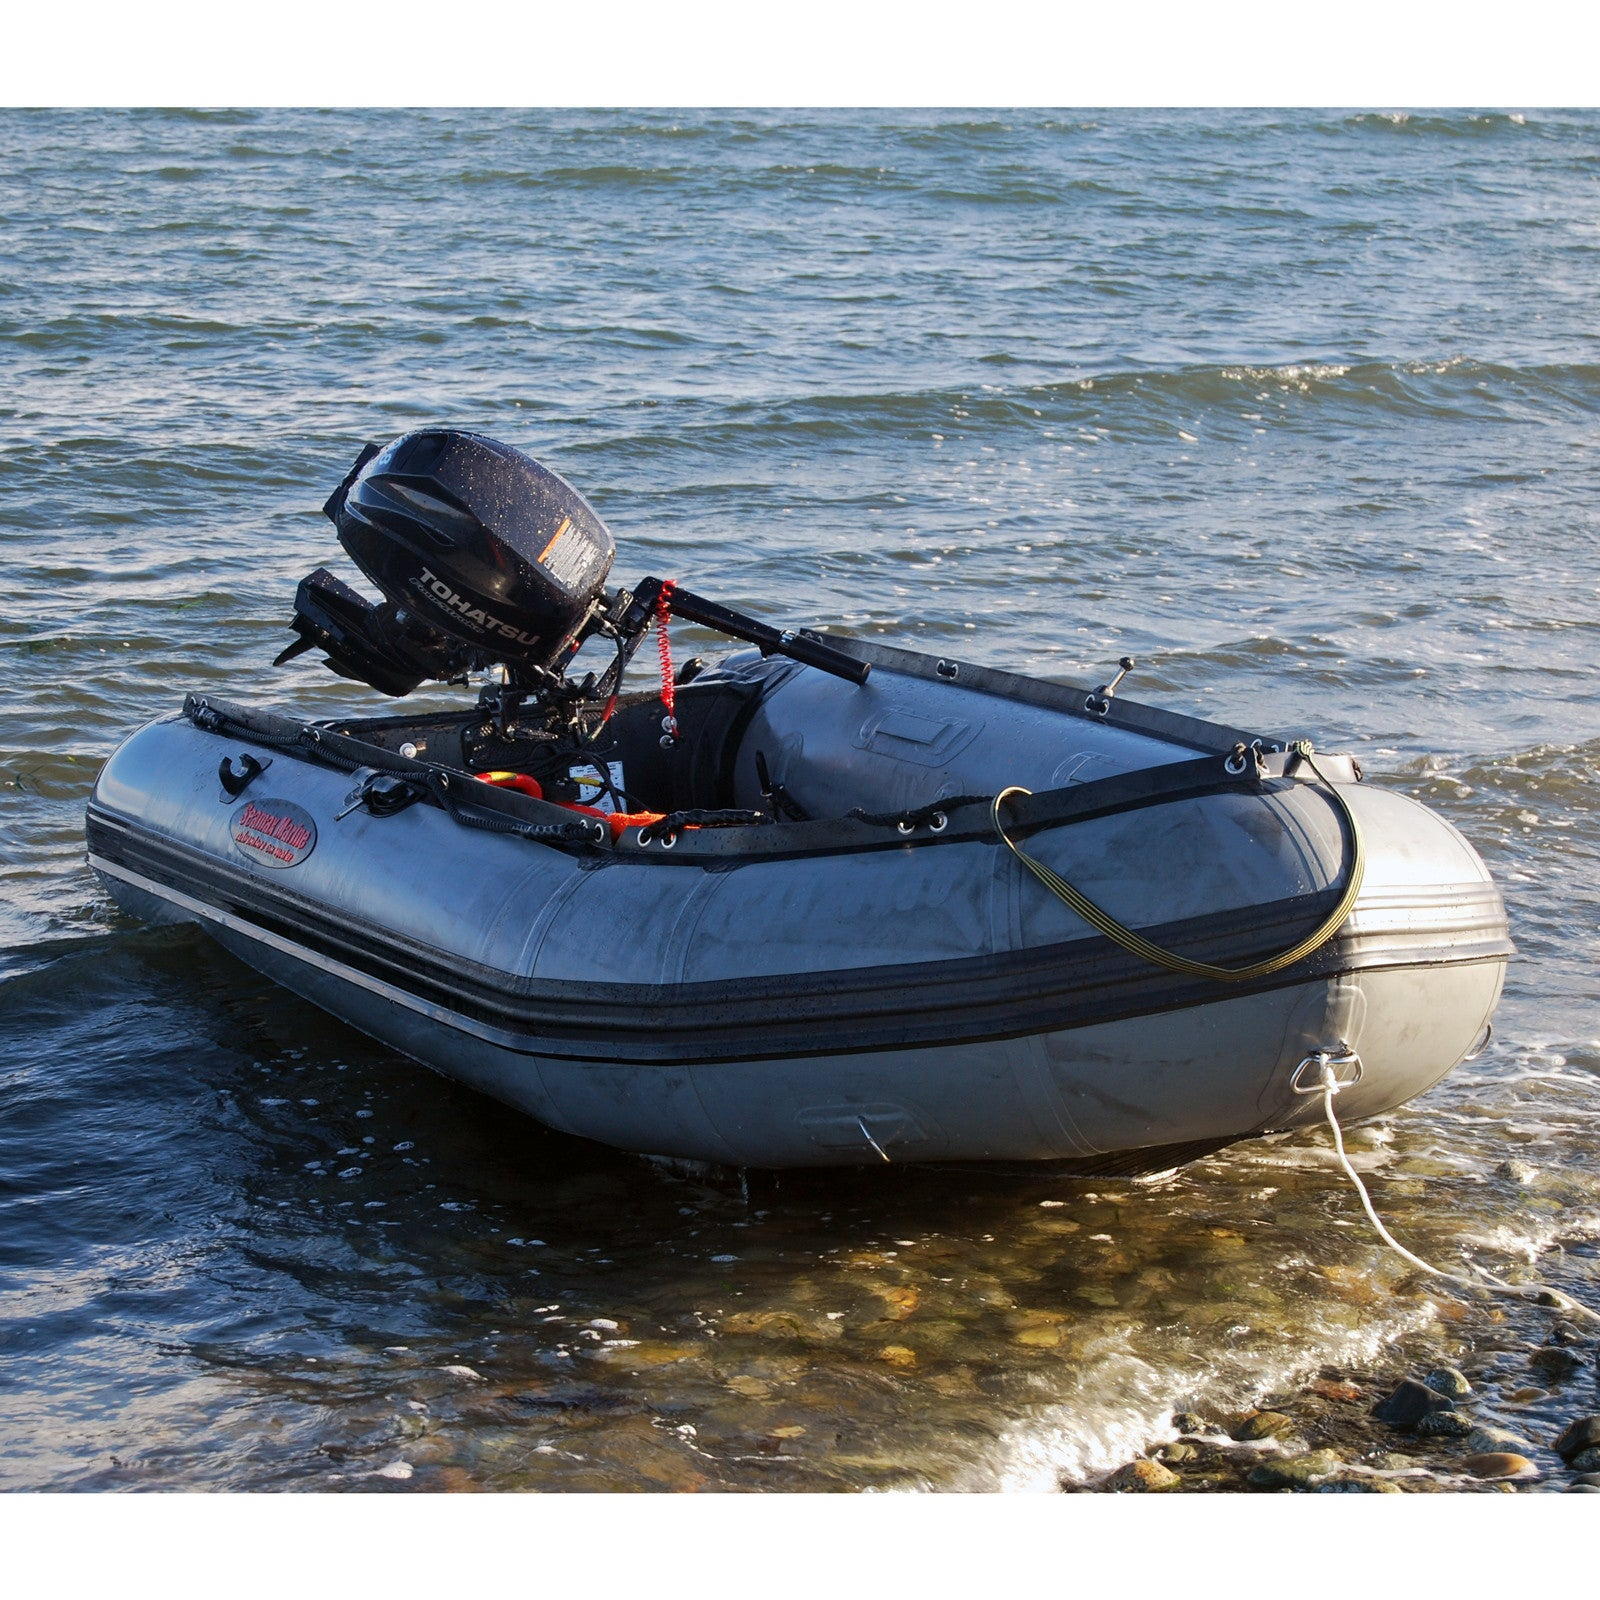 Seamax ocean320 10 5 feet heavy duty inflatable boat for Dinghy motor for sale